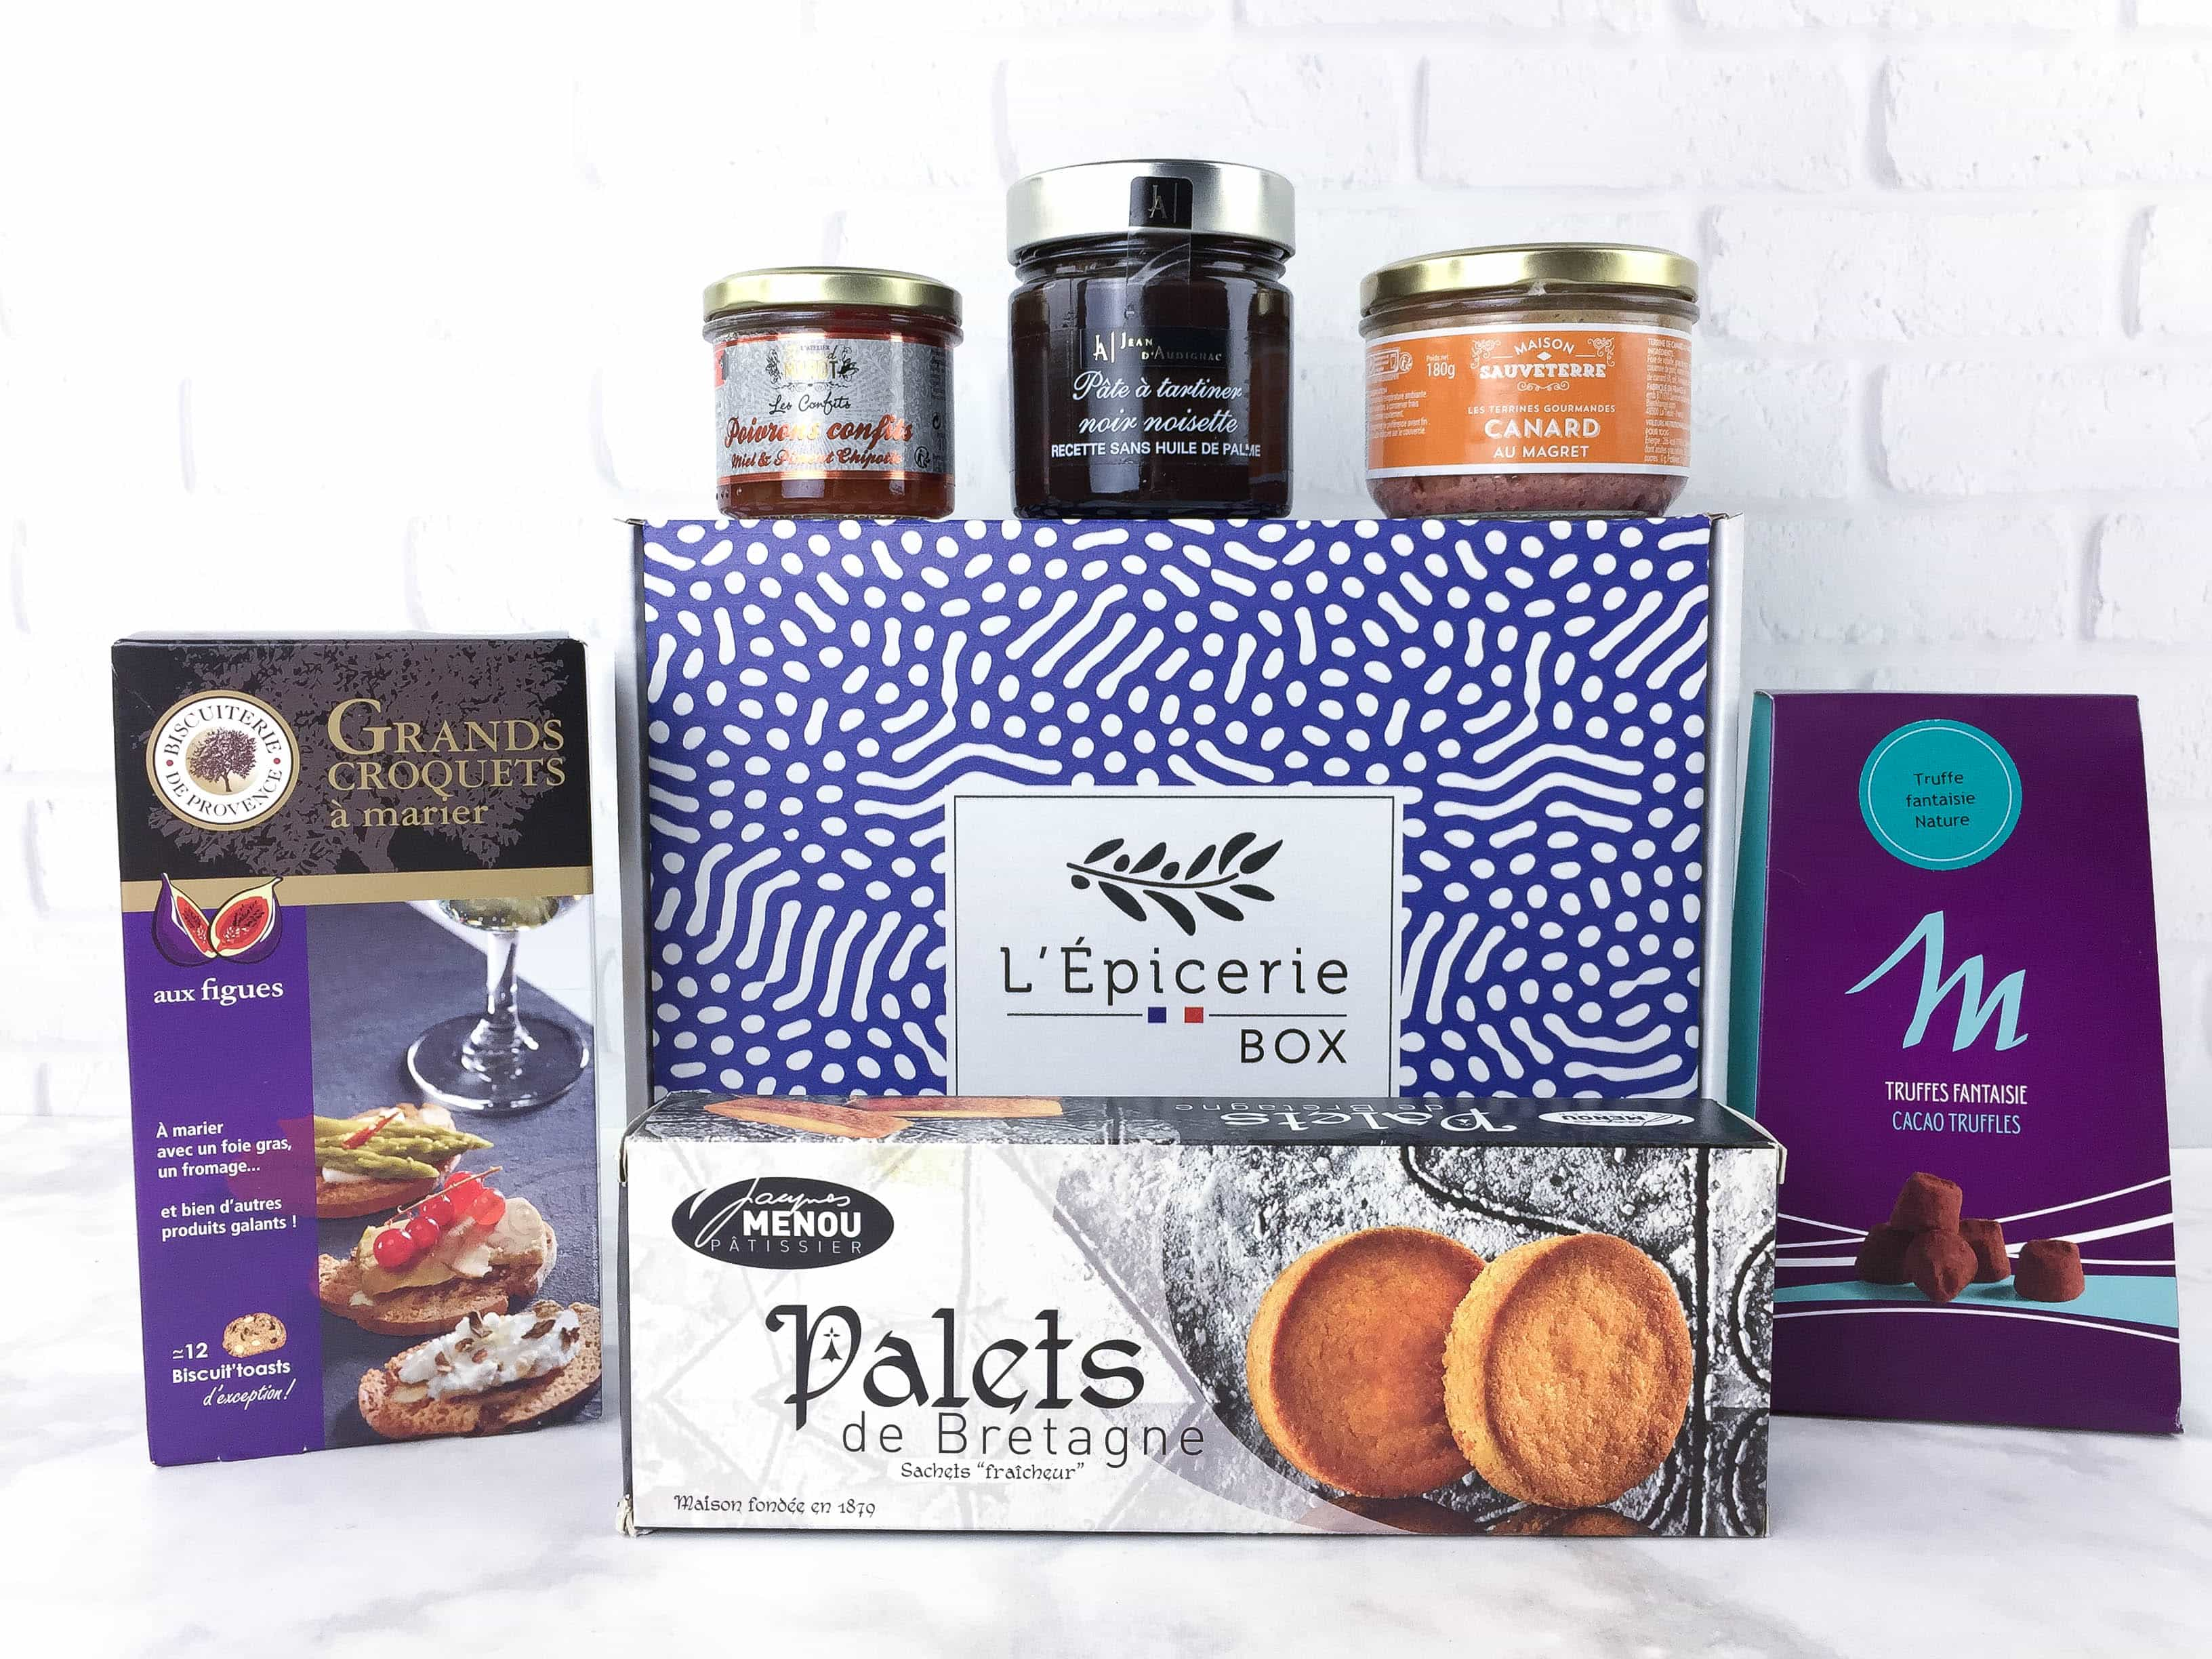 L'Epicerie Box March 2017 Subscription Box Review + Coupon!